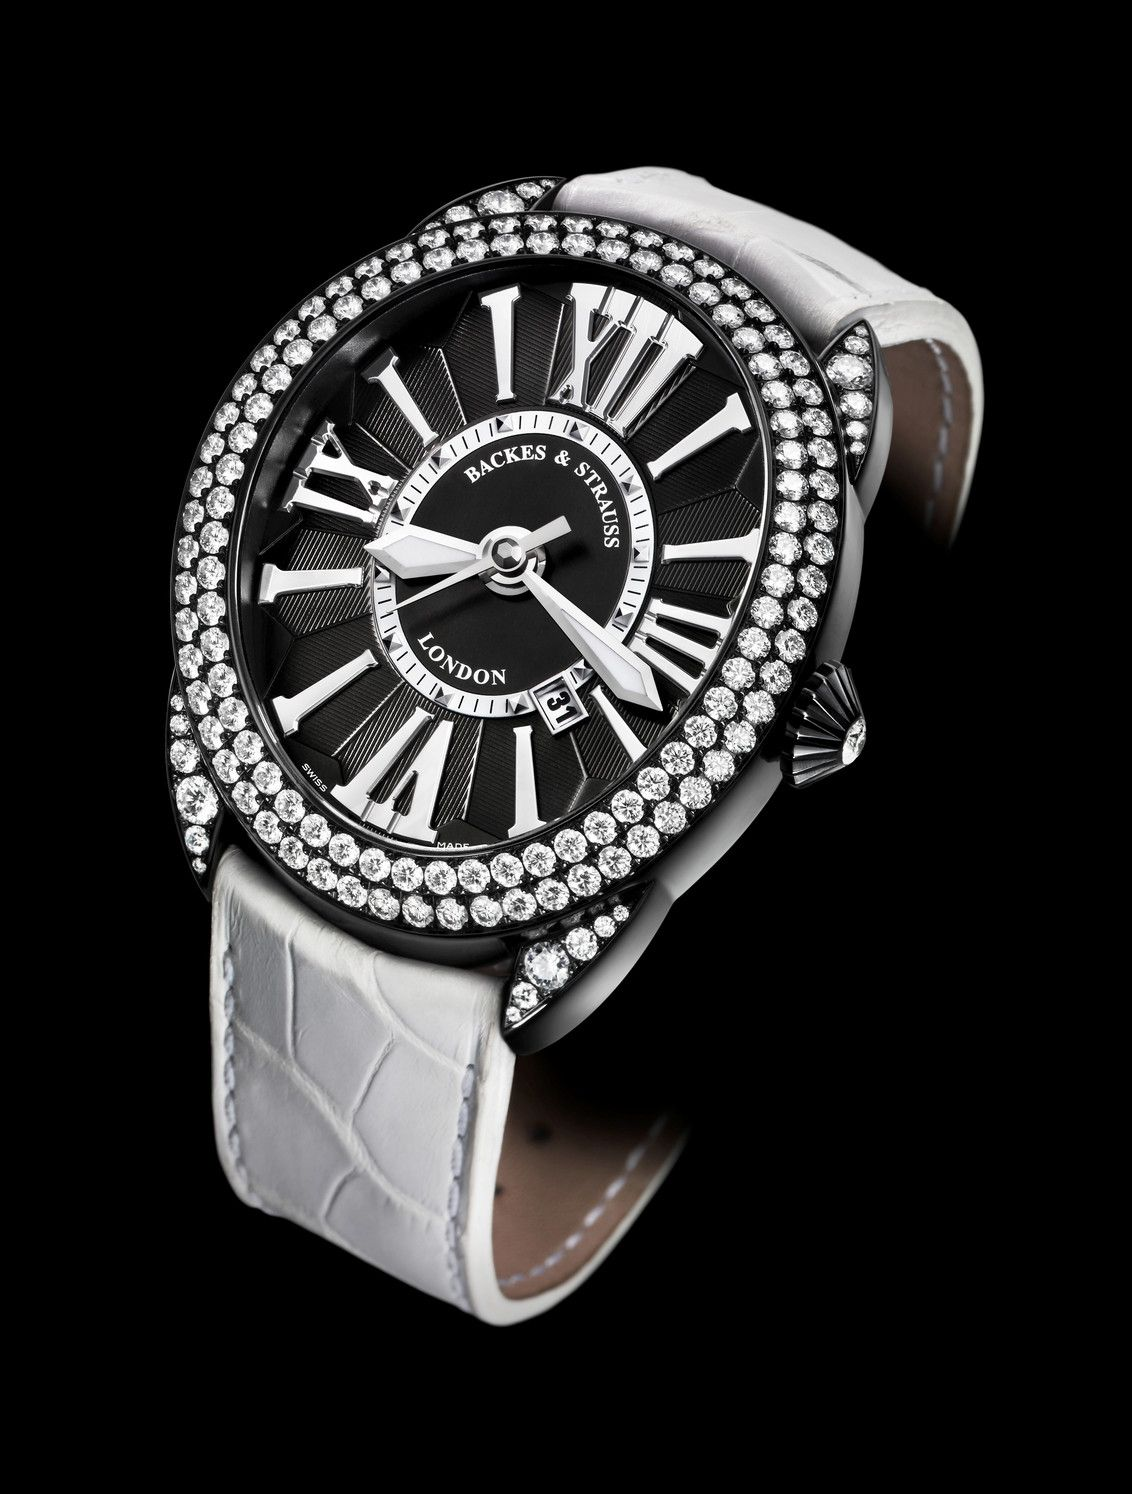 second blr product regent st stainless strauss dint s watches details ladies steel womens and women backes diamond